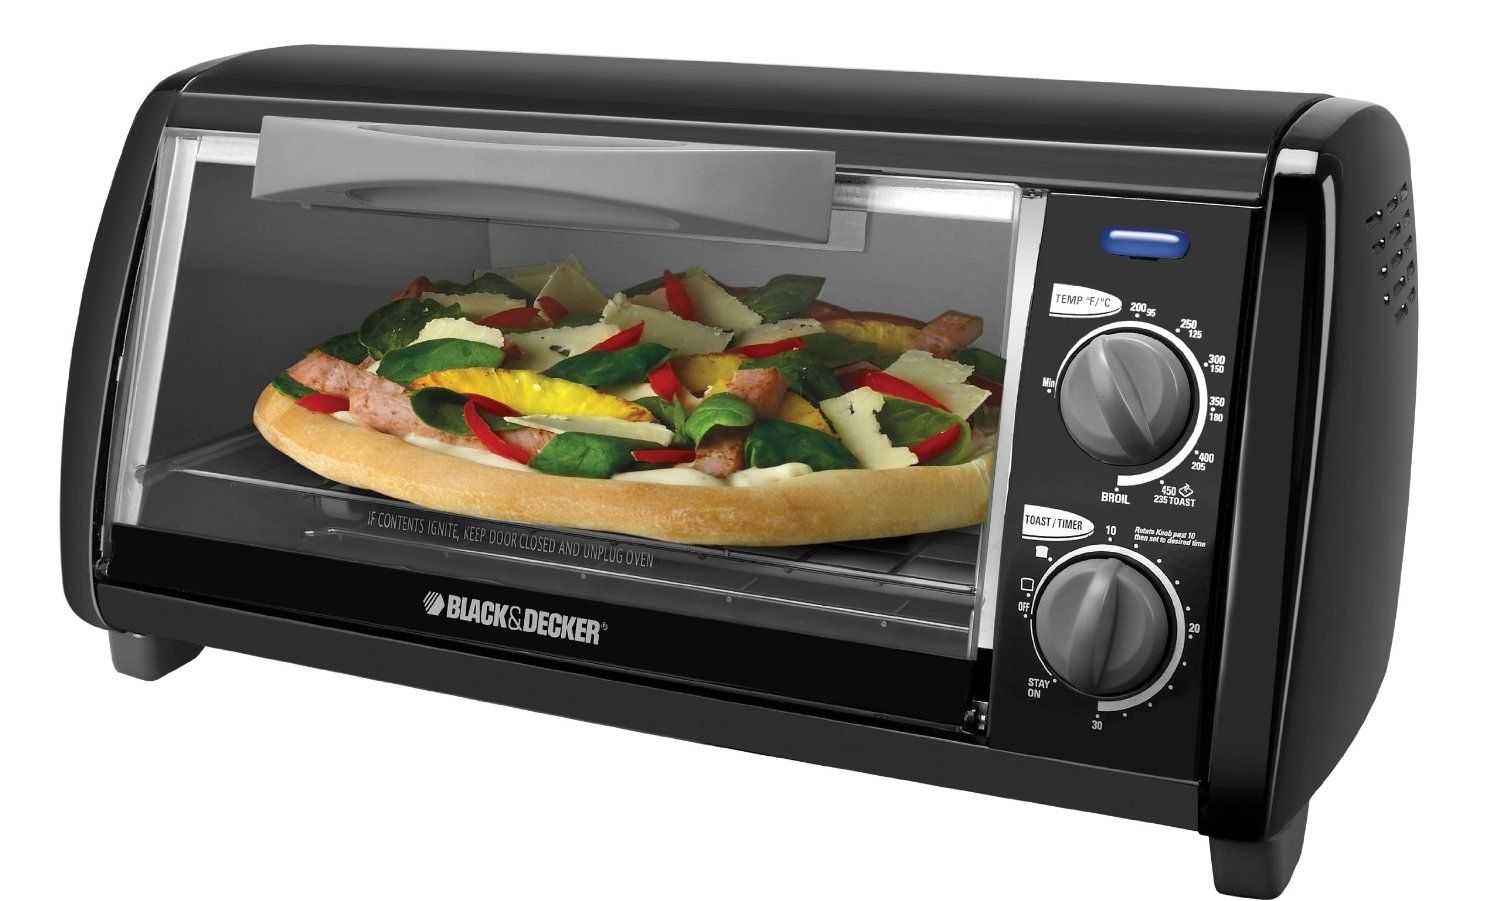 Black And Decker To1420b 4 Slice Toaster Oven Black Review More